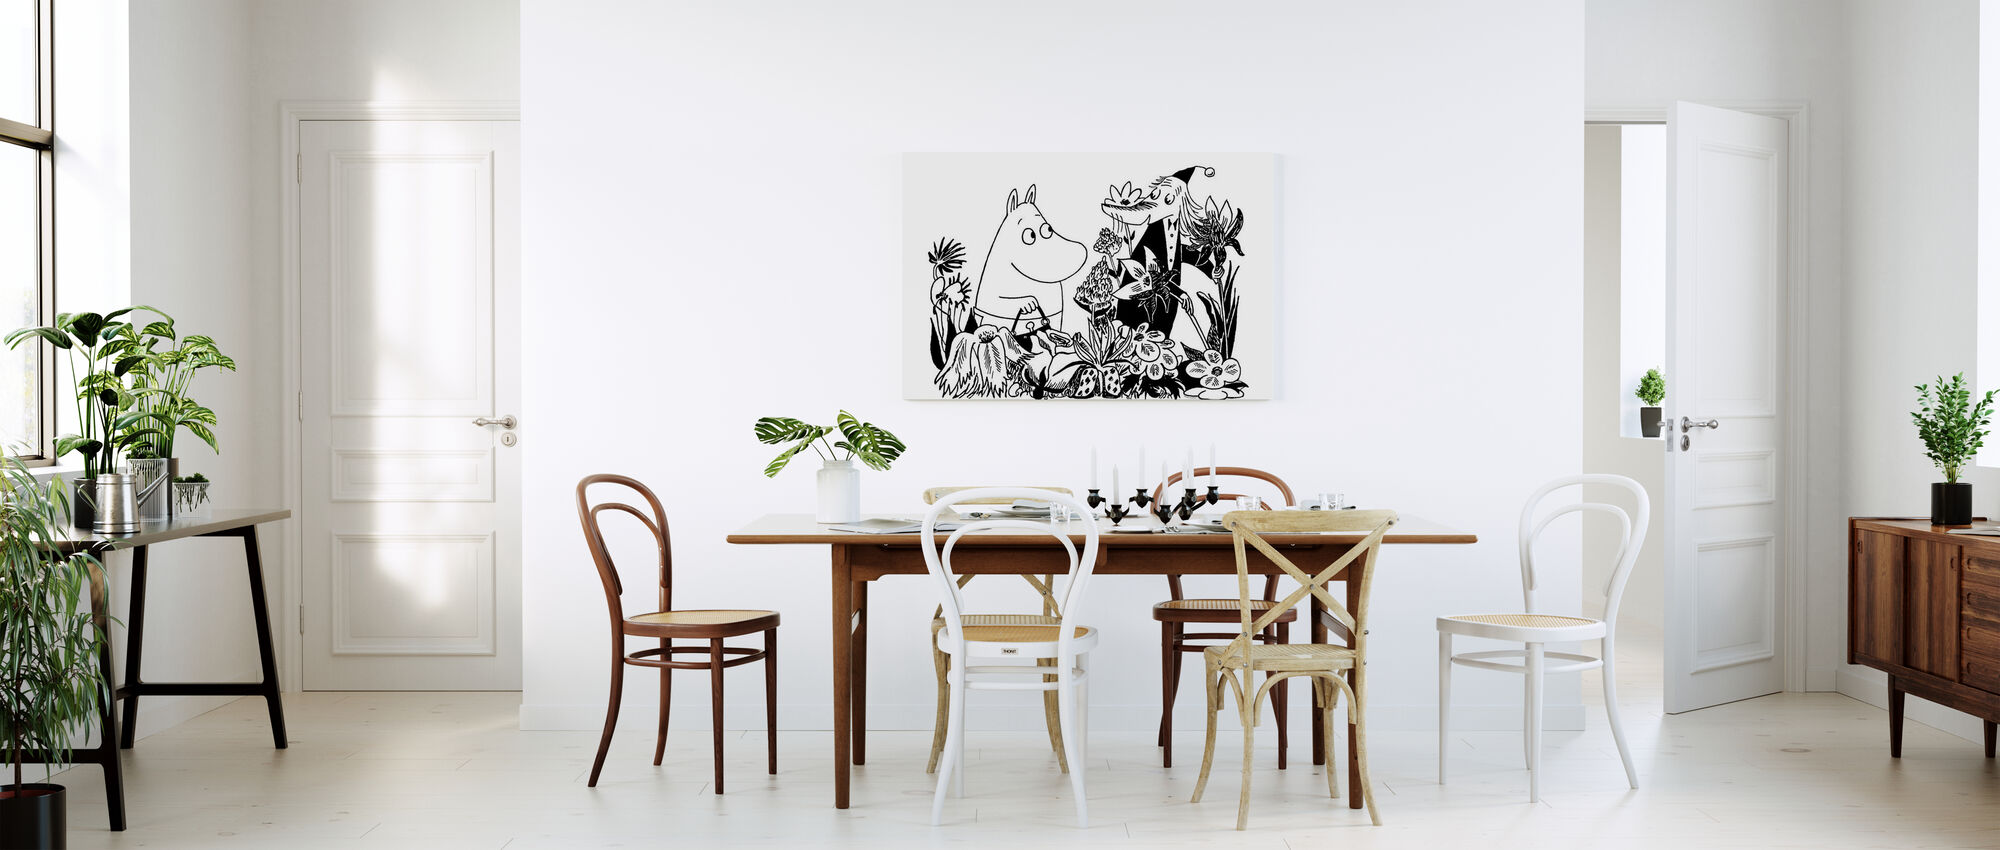 Moominmamma and Fillyjonk - Canvas print - Kitchen